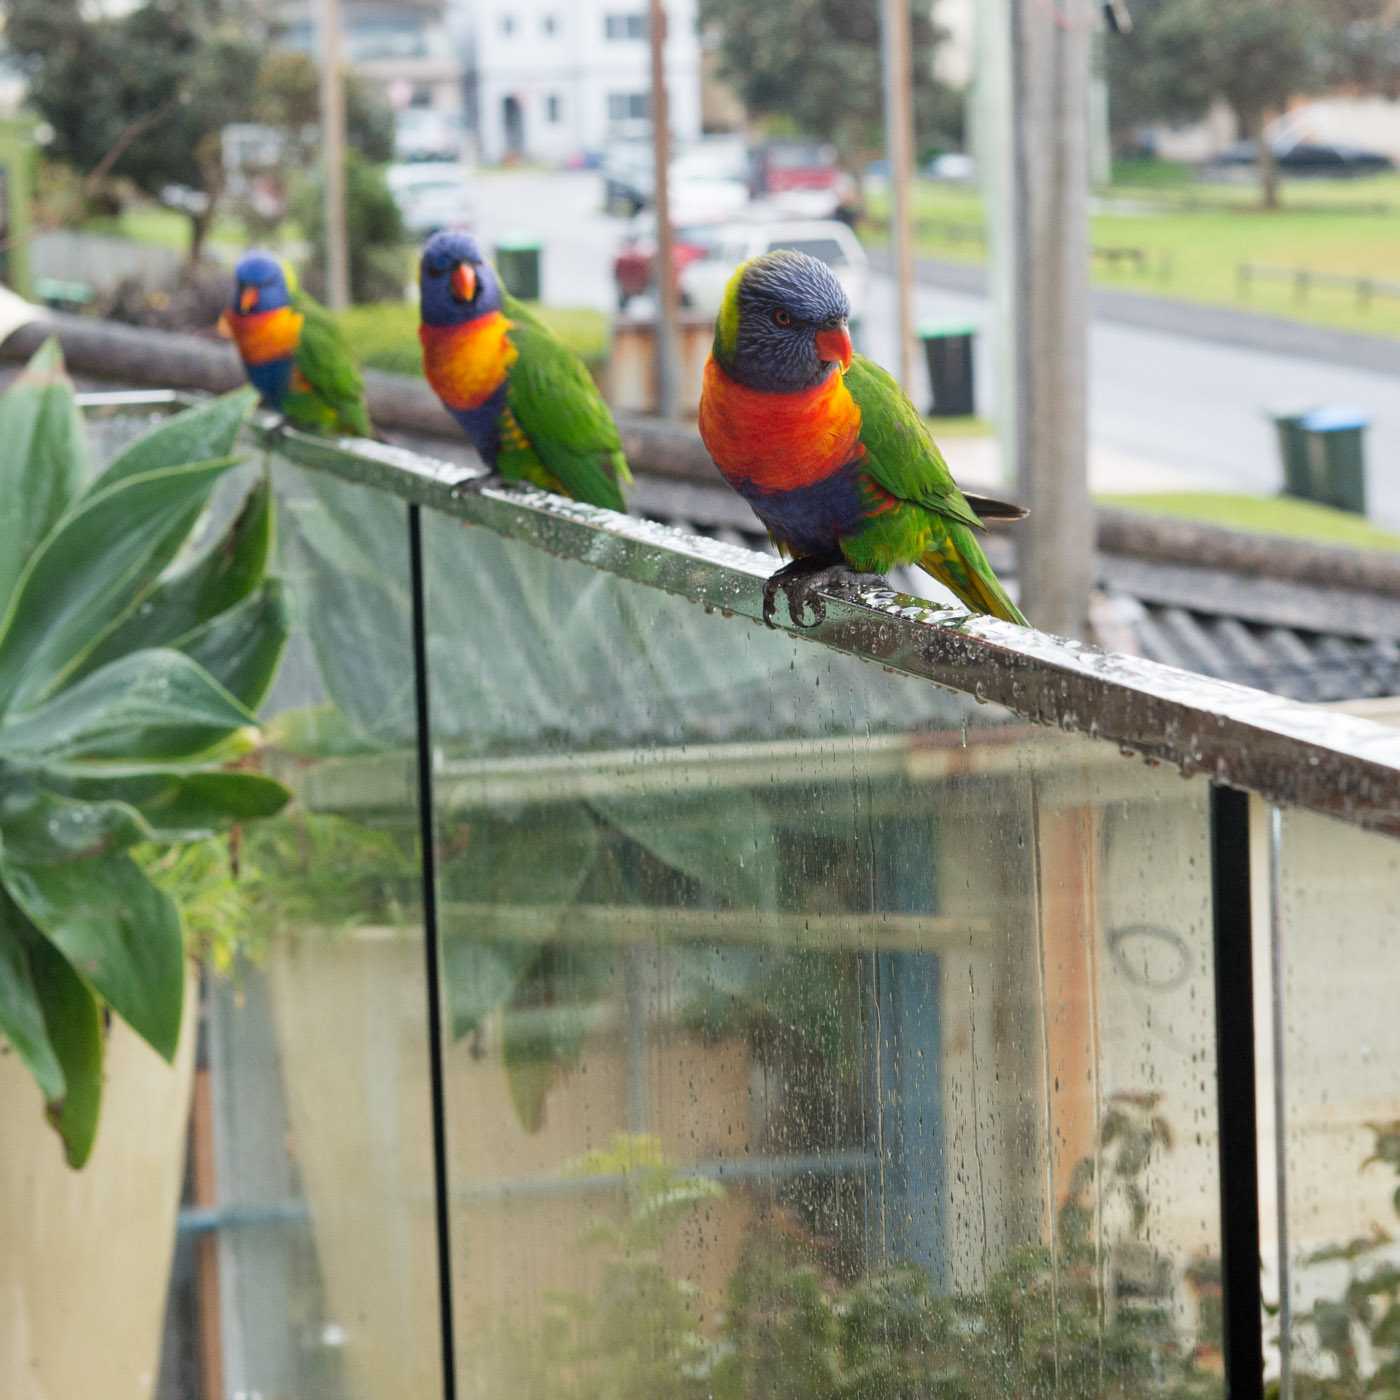 Lorikeets on the balcony